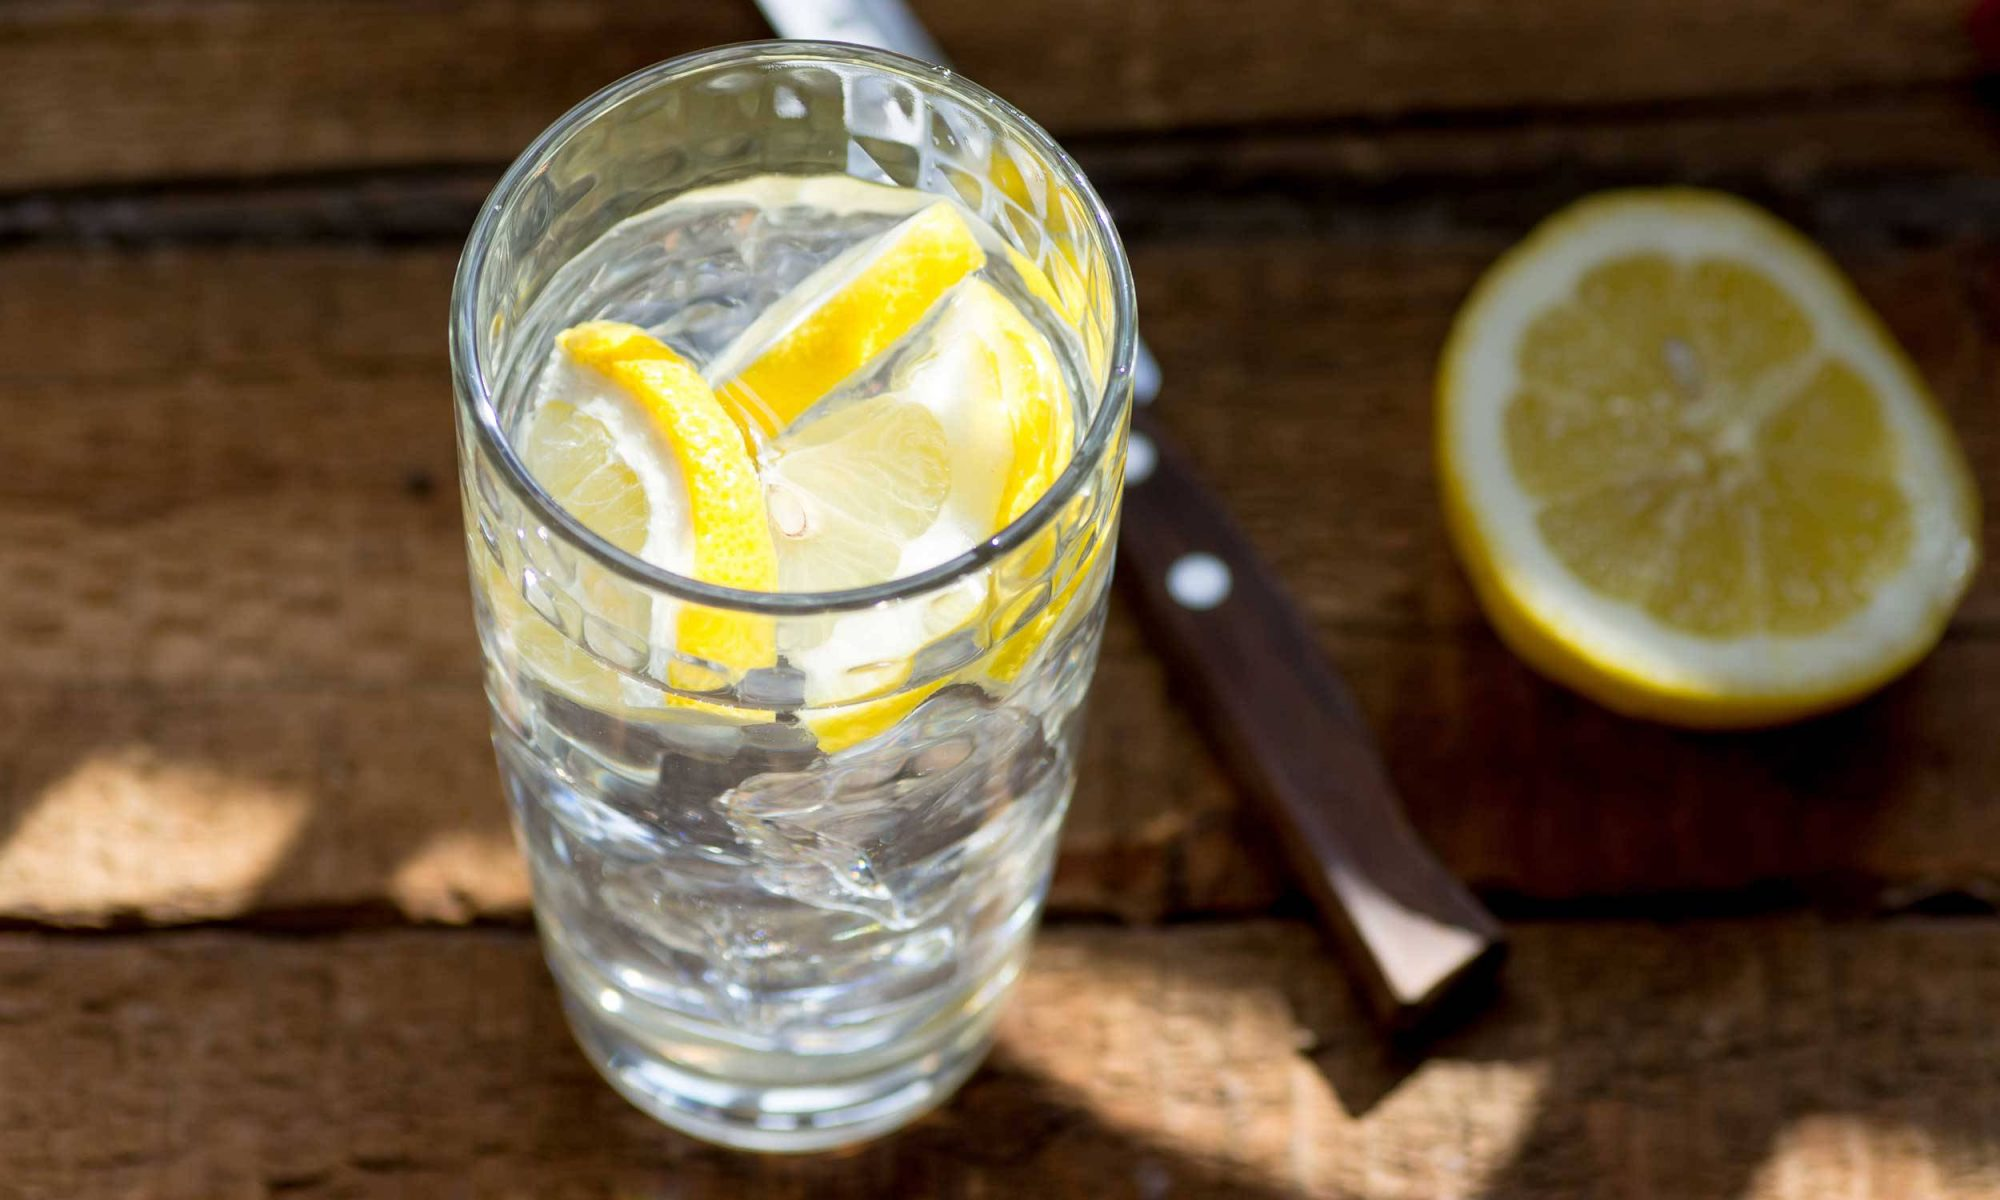 What Are the Benefits of Drinking Lemon Water in the Morning?